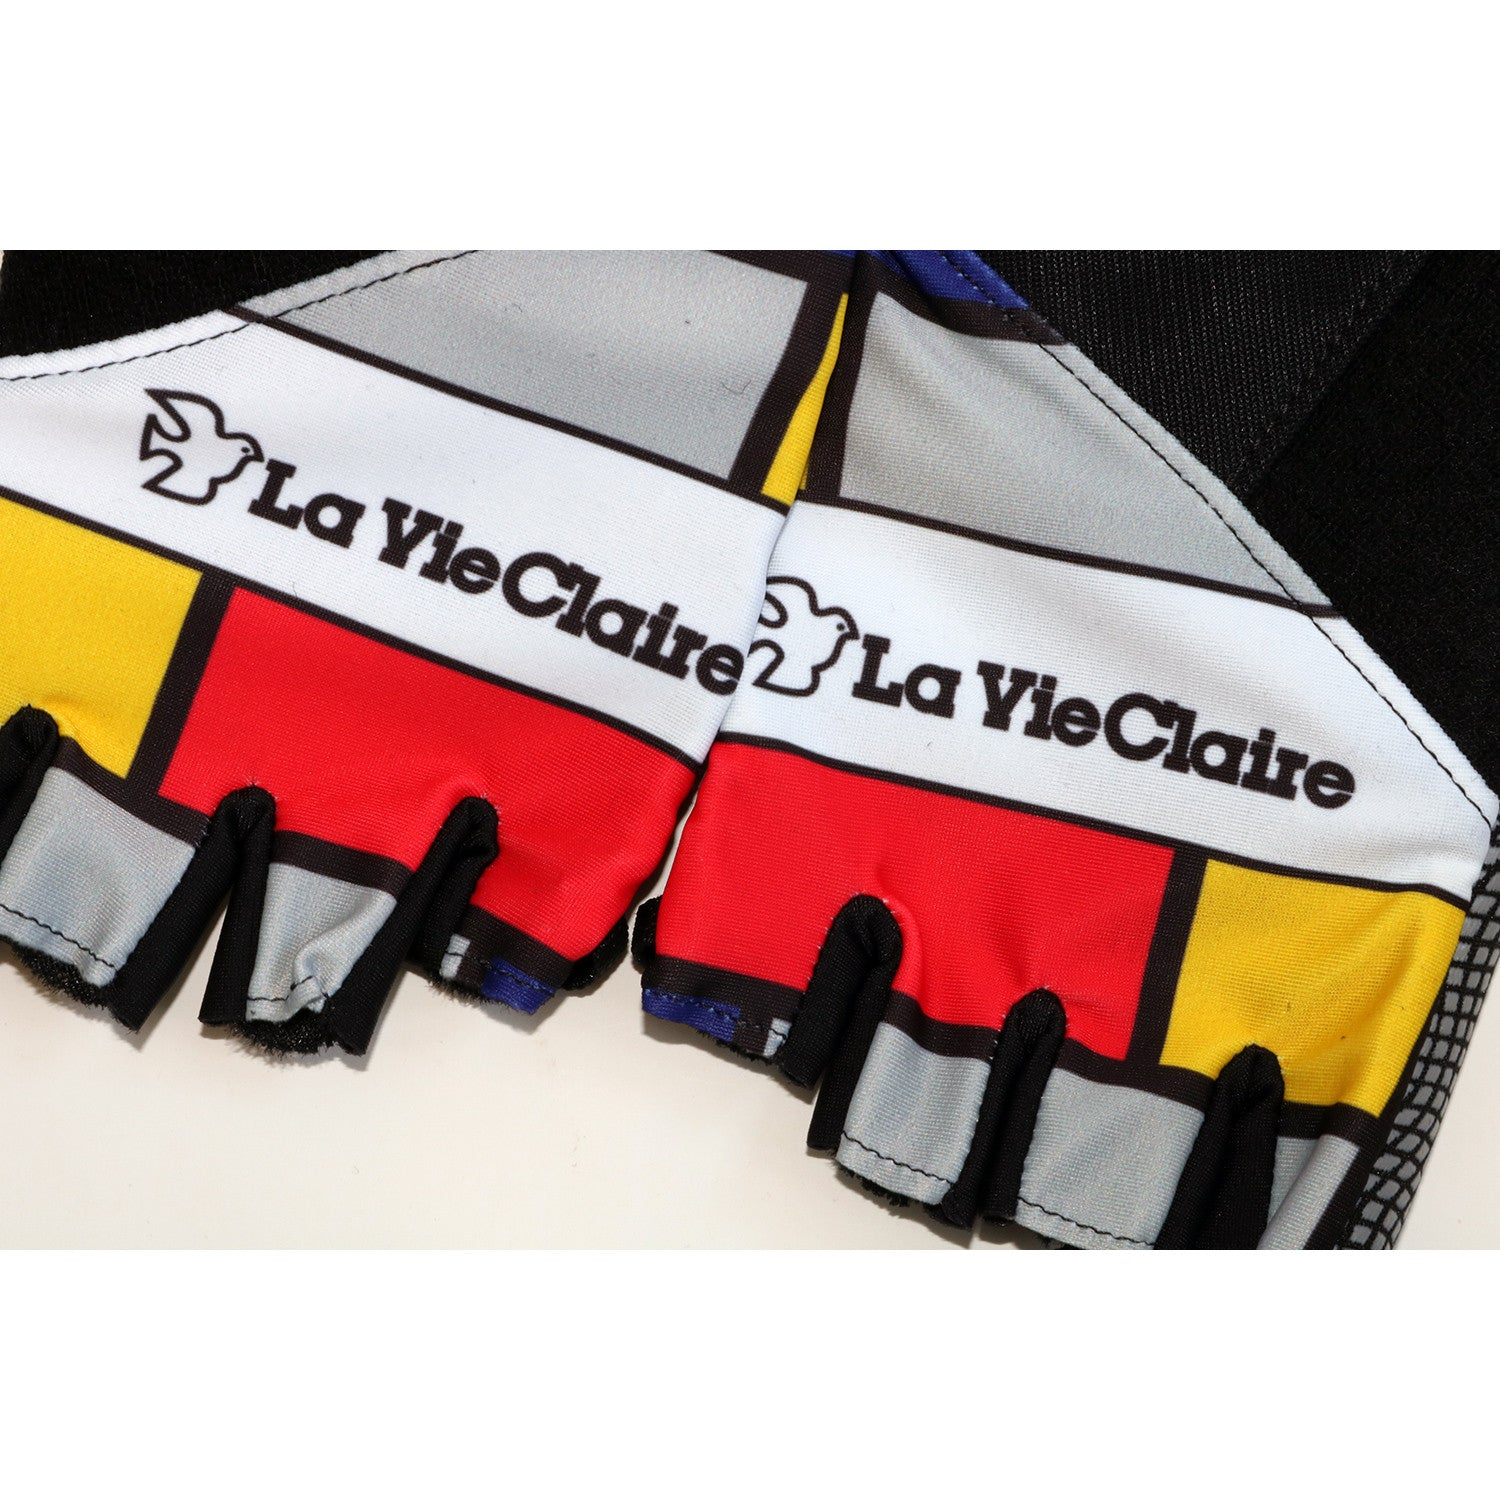 La vie claire wonder radar retro track mitts summer gloves for La vie claire olivet